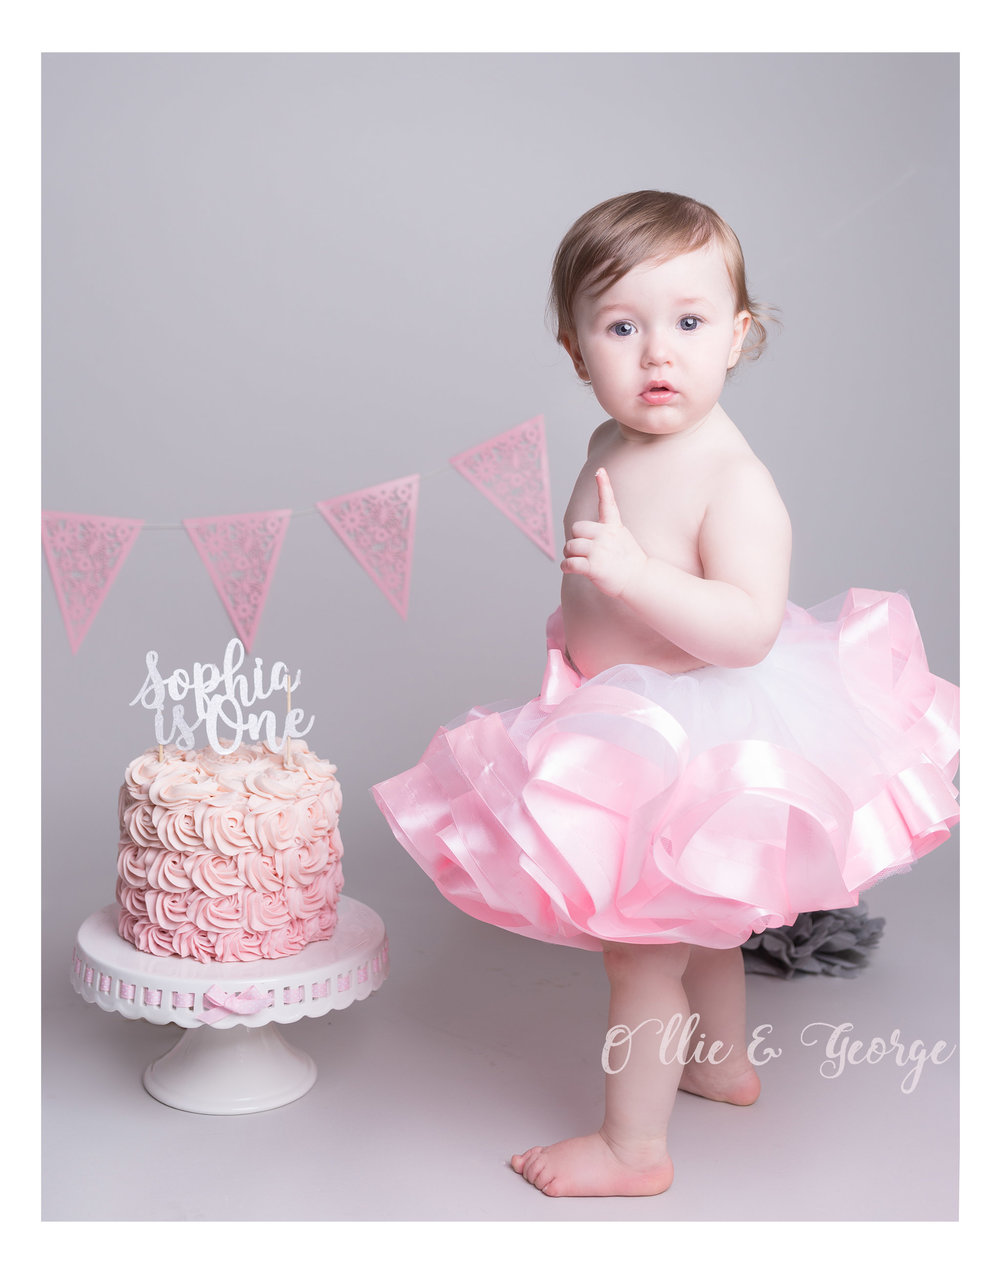 Cake smash photographer Blackburn, newborn, baby and children's photographer Lancashire, photographer near me, Blackburn Photographer, 1st Birthday photog